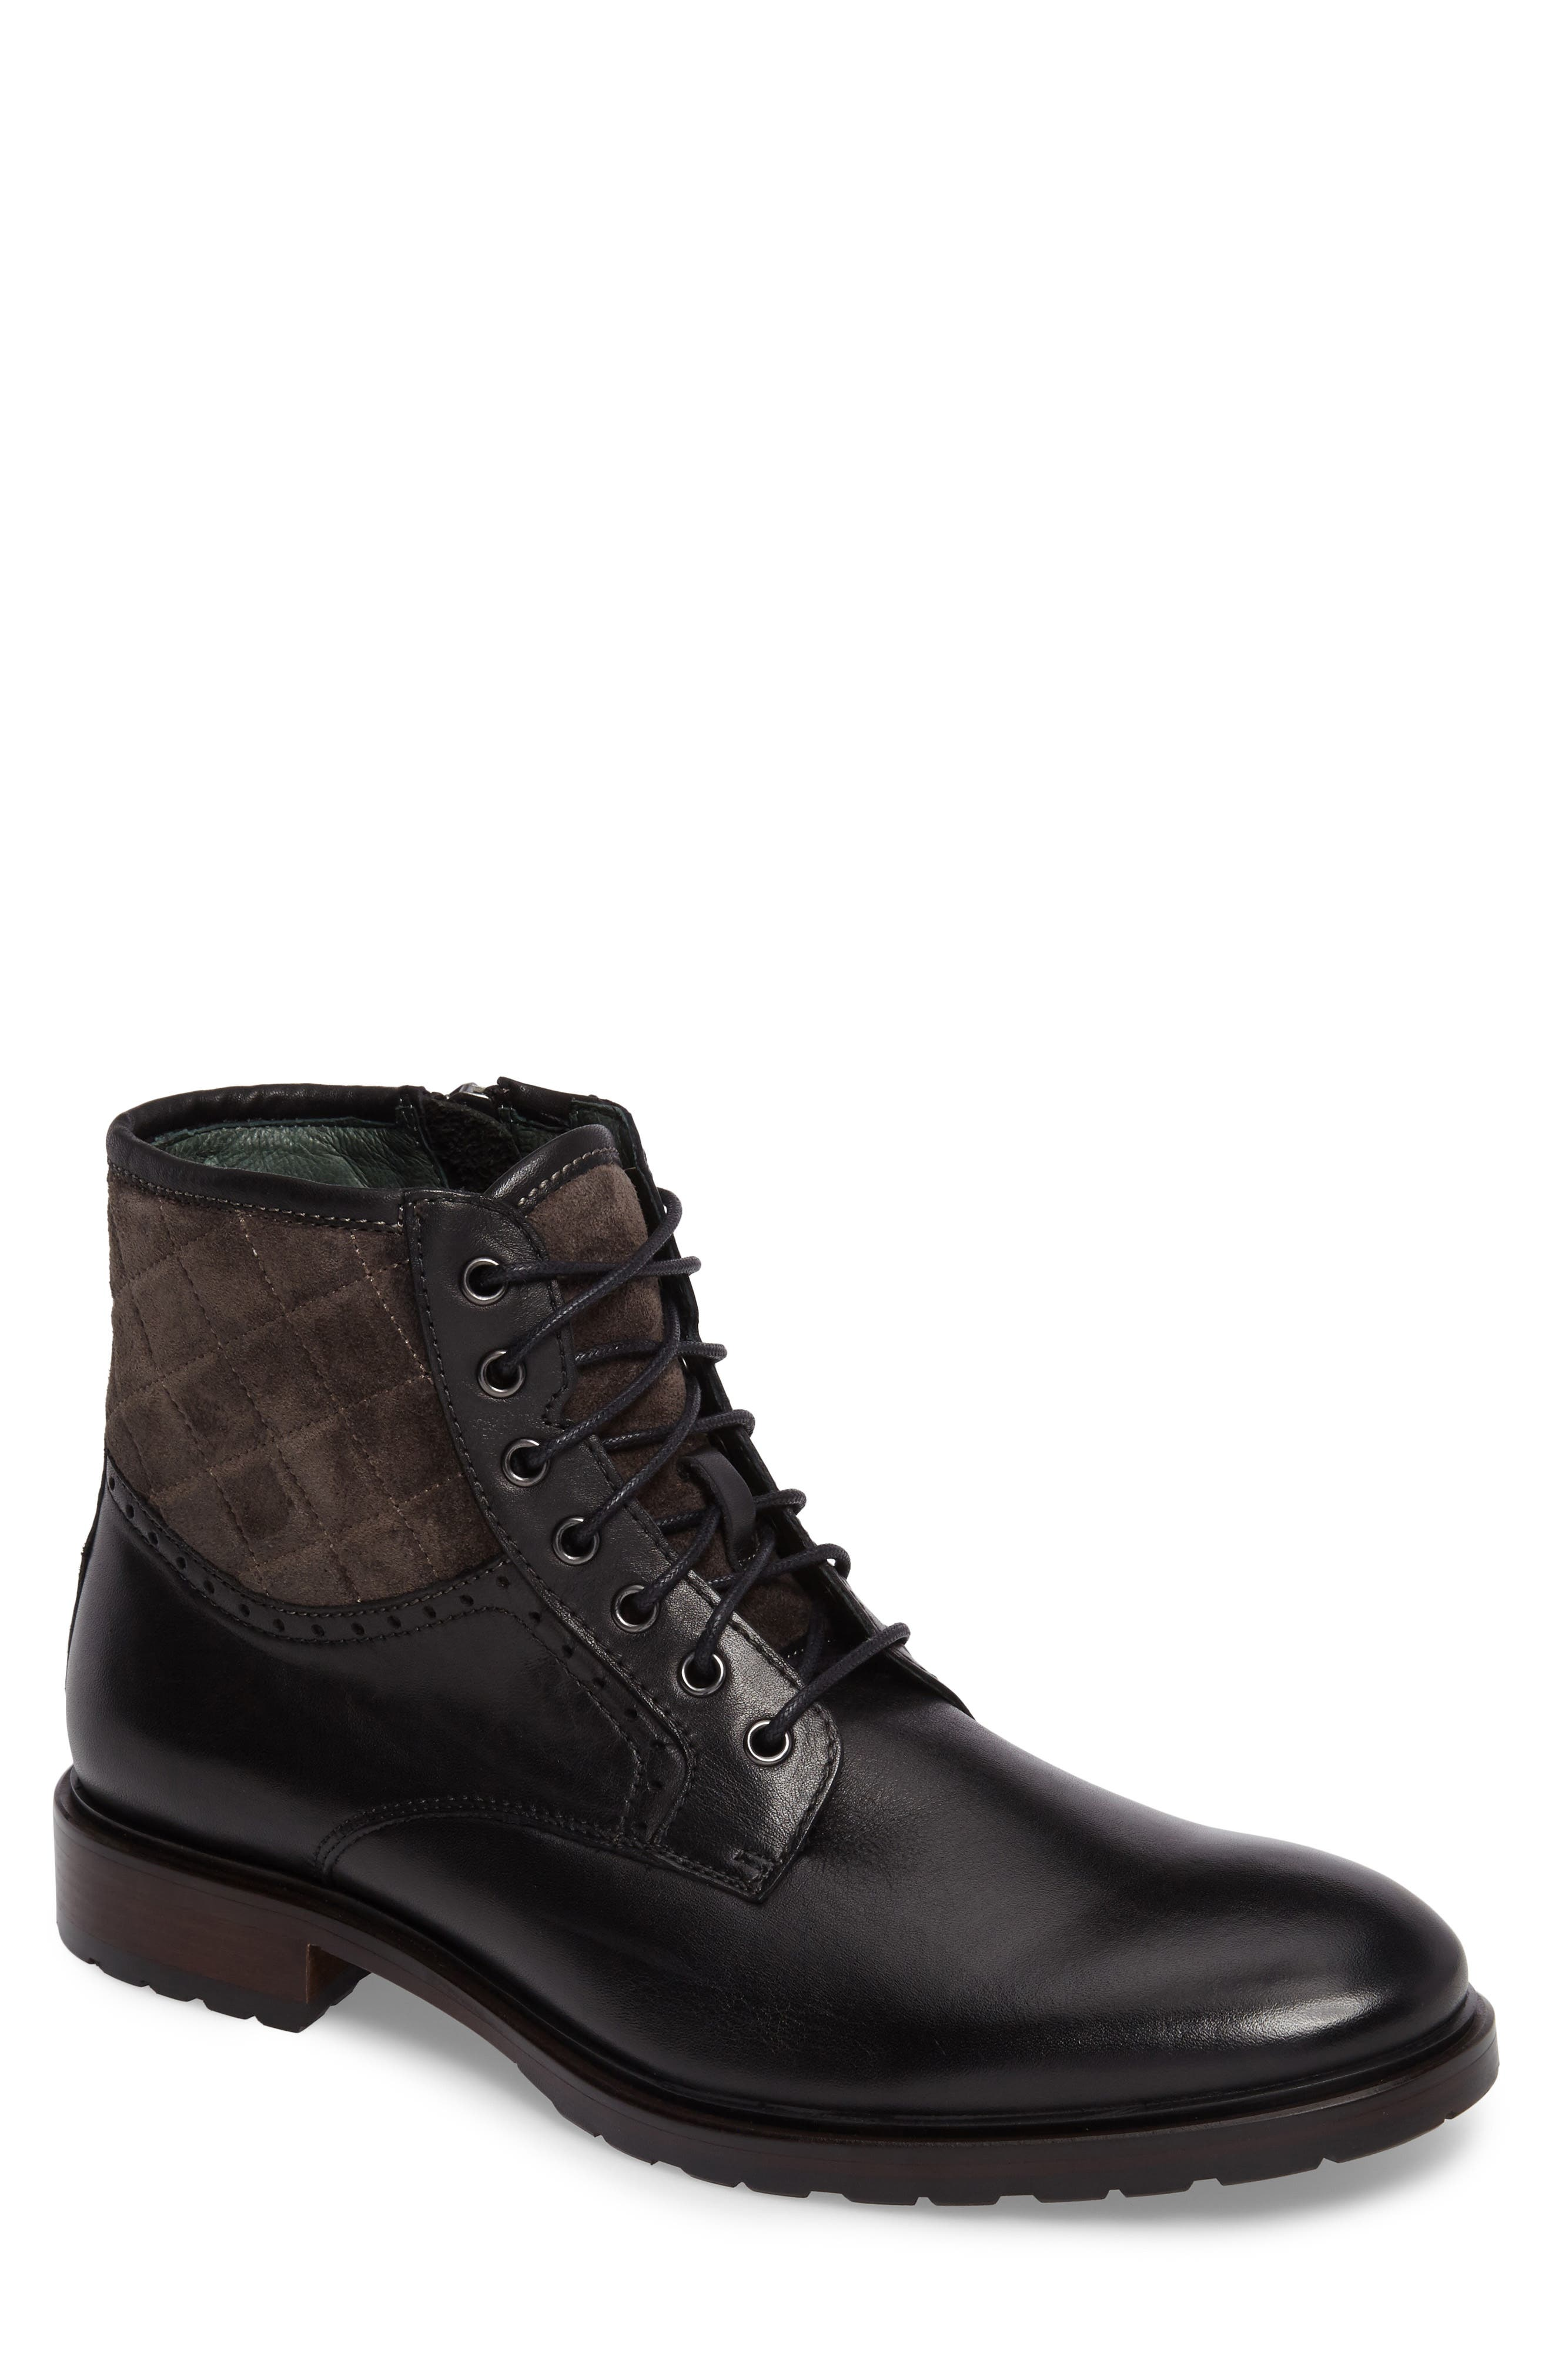 Myles Plain Toe Boot,                             Main thumbnail 1, color,